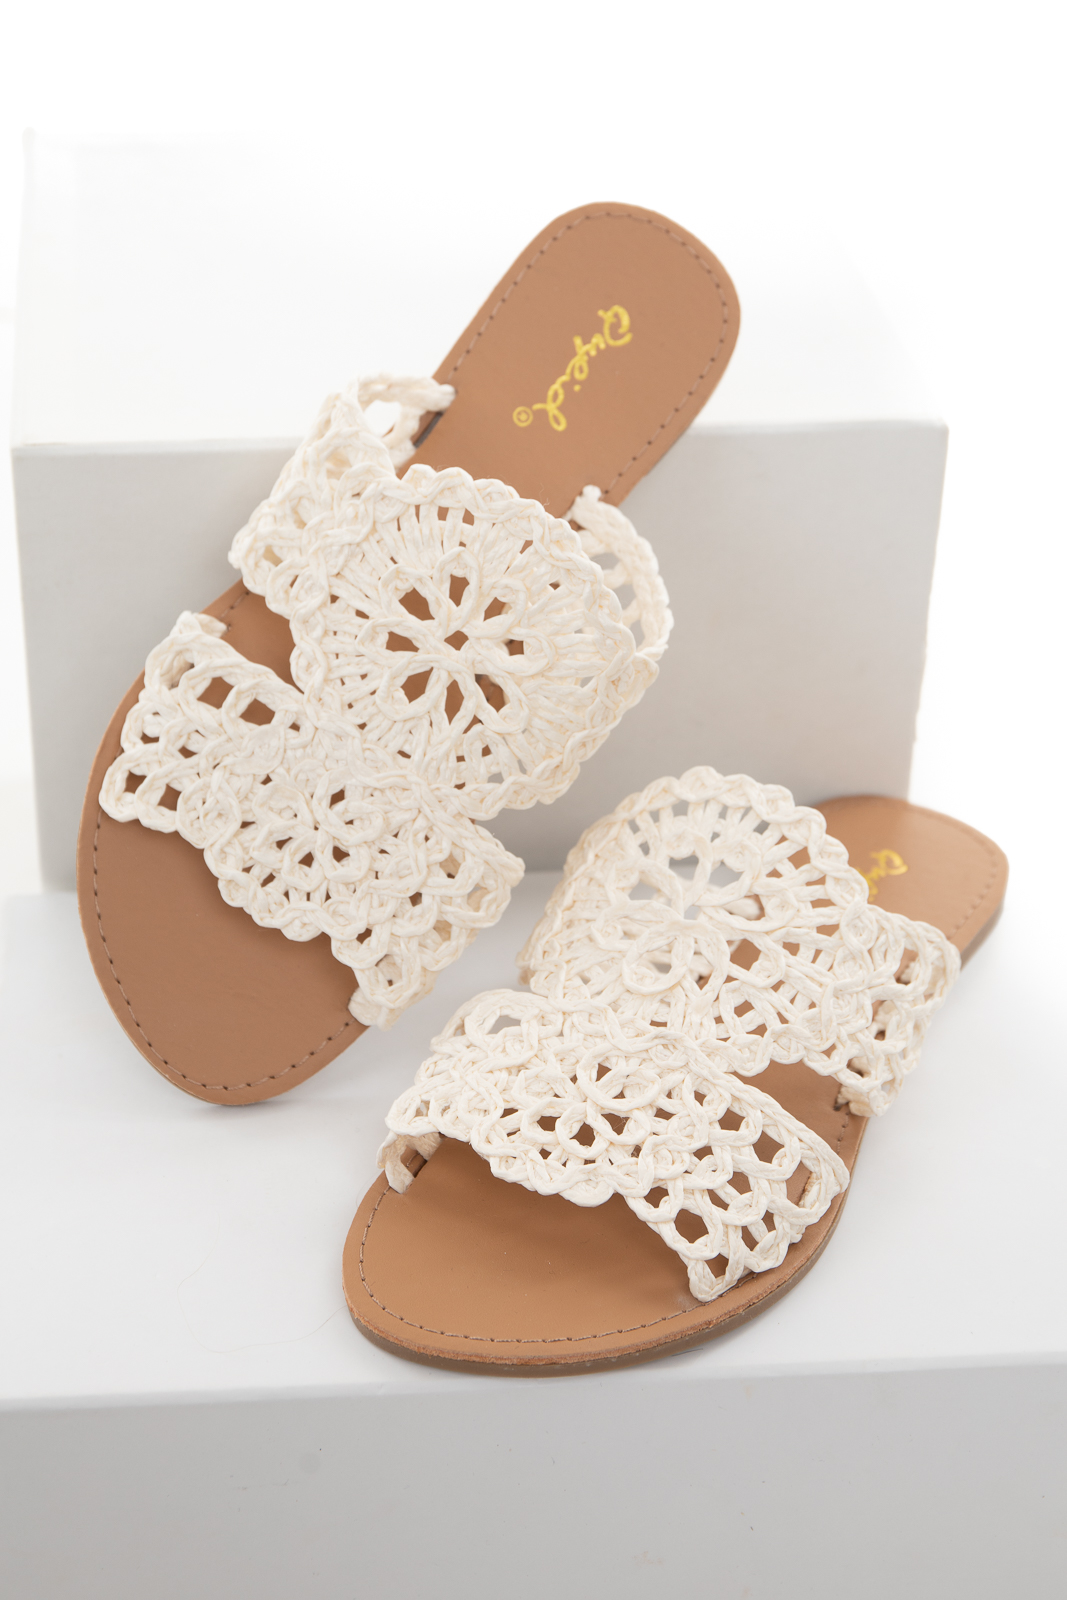 Cream Open Toe Sandal with Woven Patterned Details